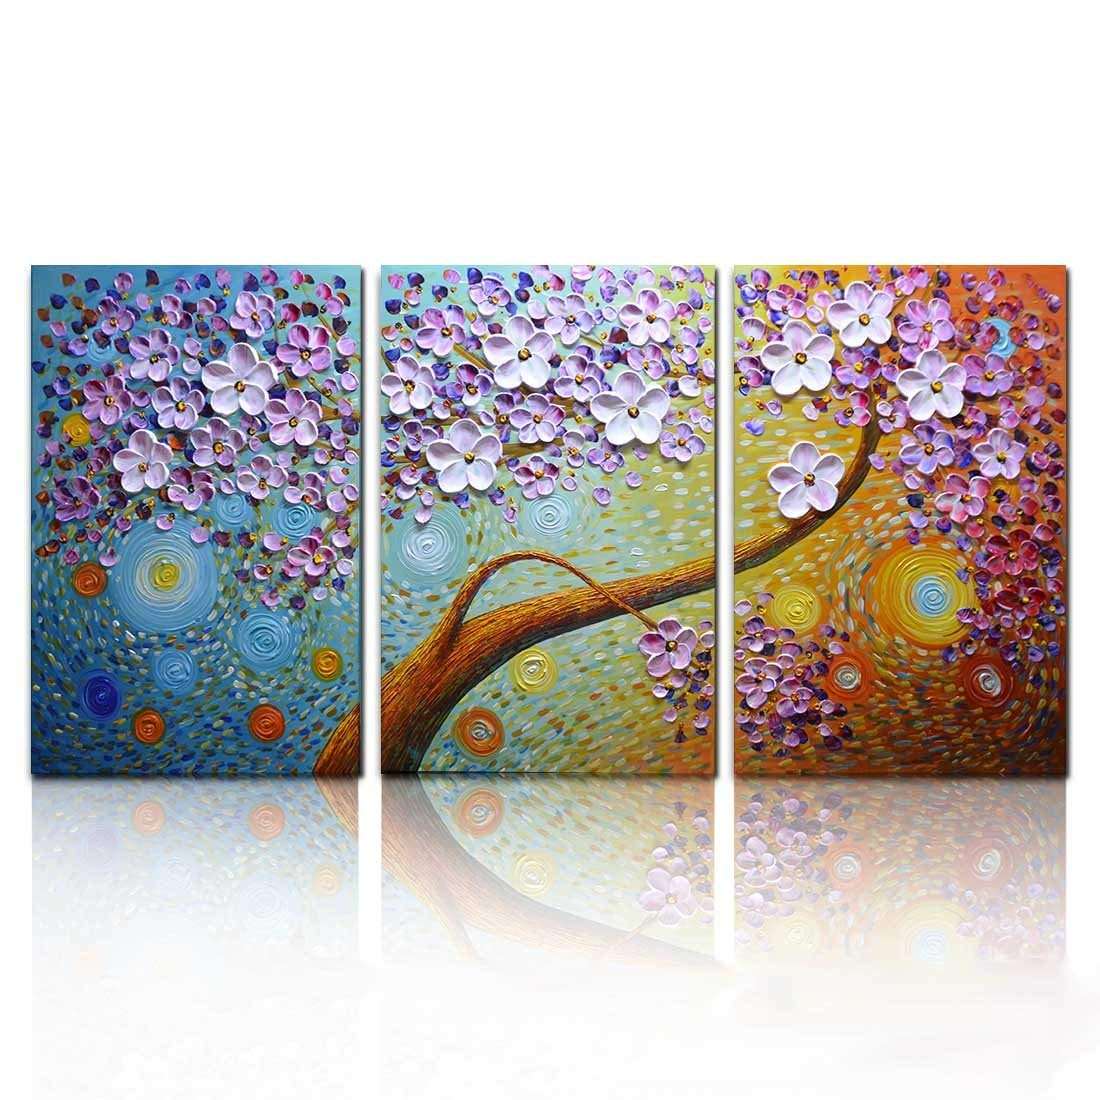 Asdamart handpainted oil paintings floral bedroom decor 3d paintings horizontal wall artholiday promotion